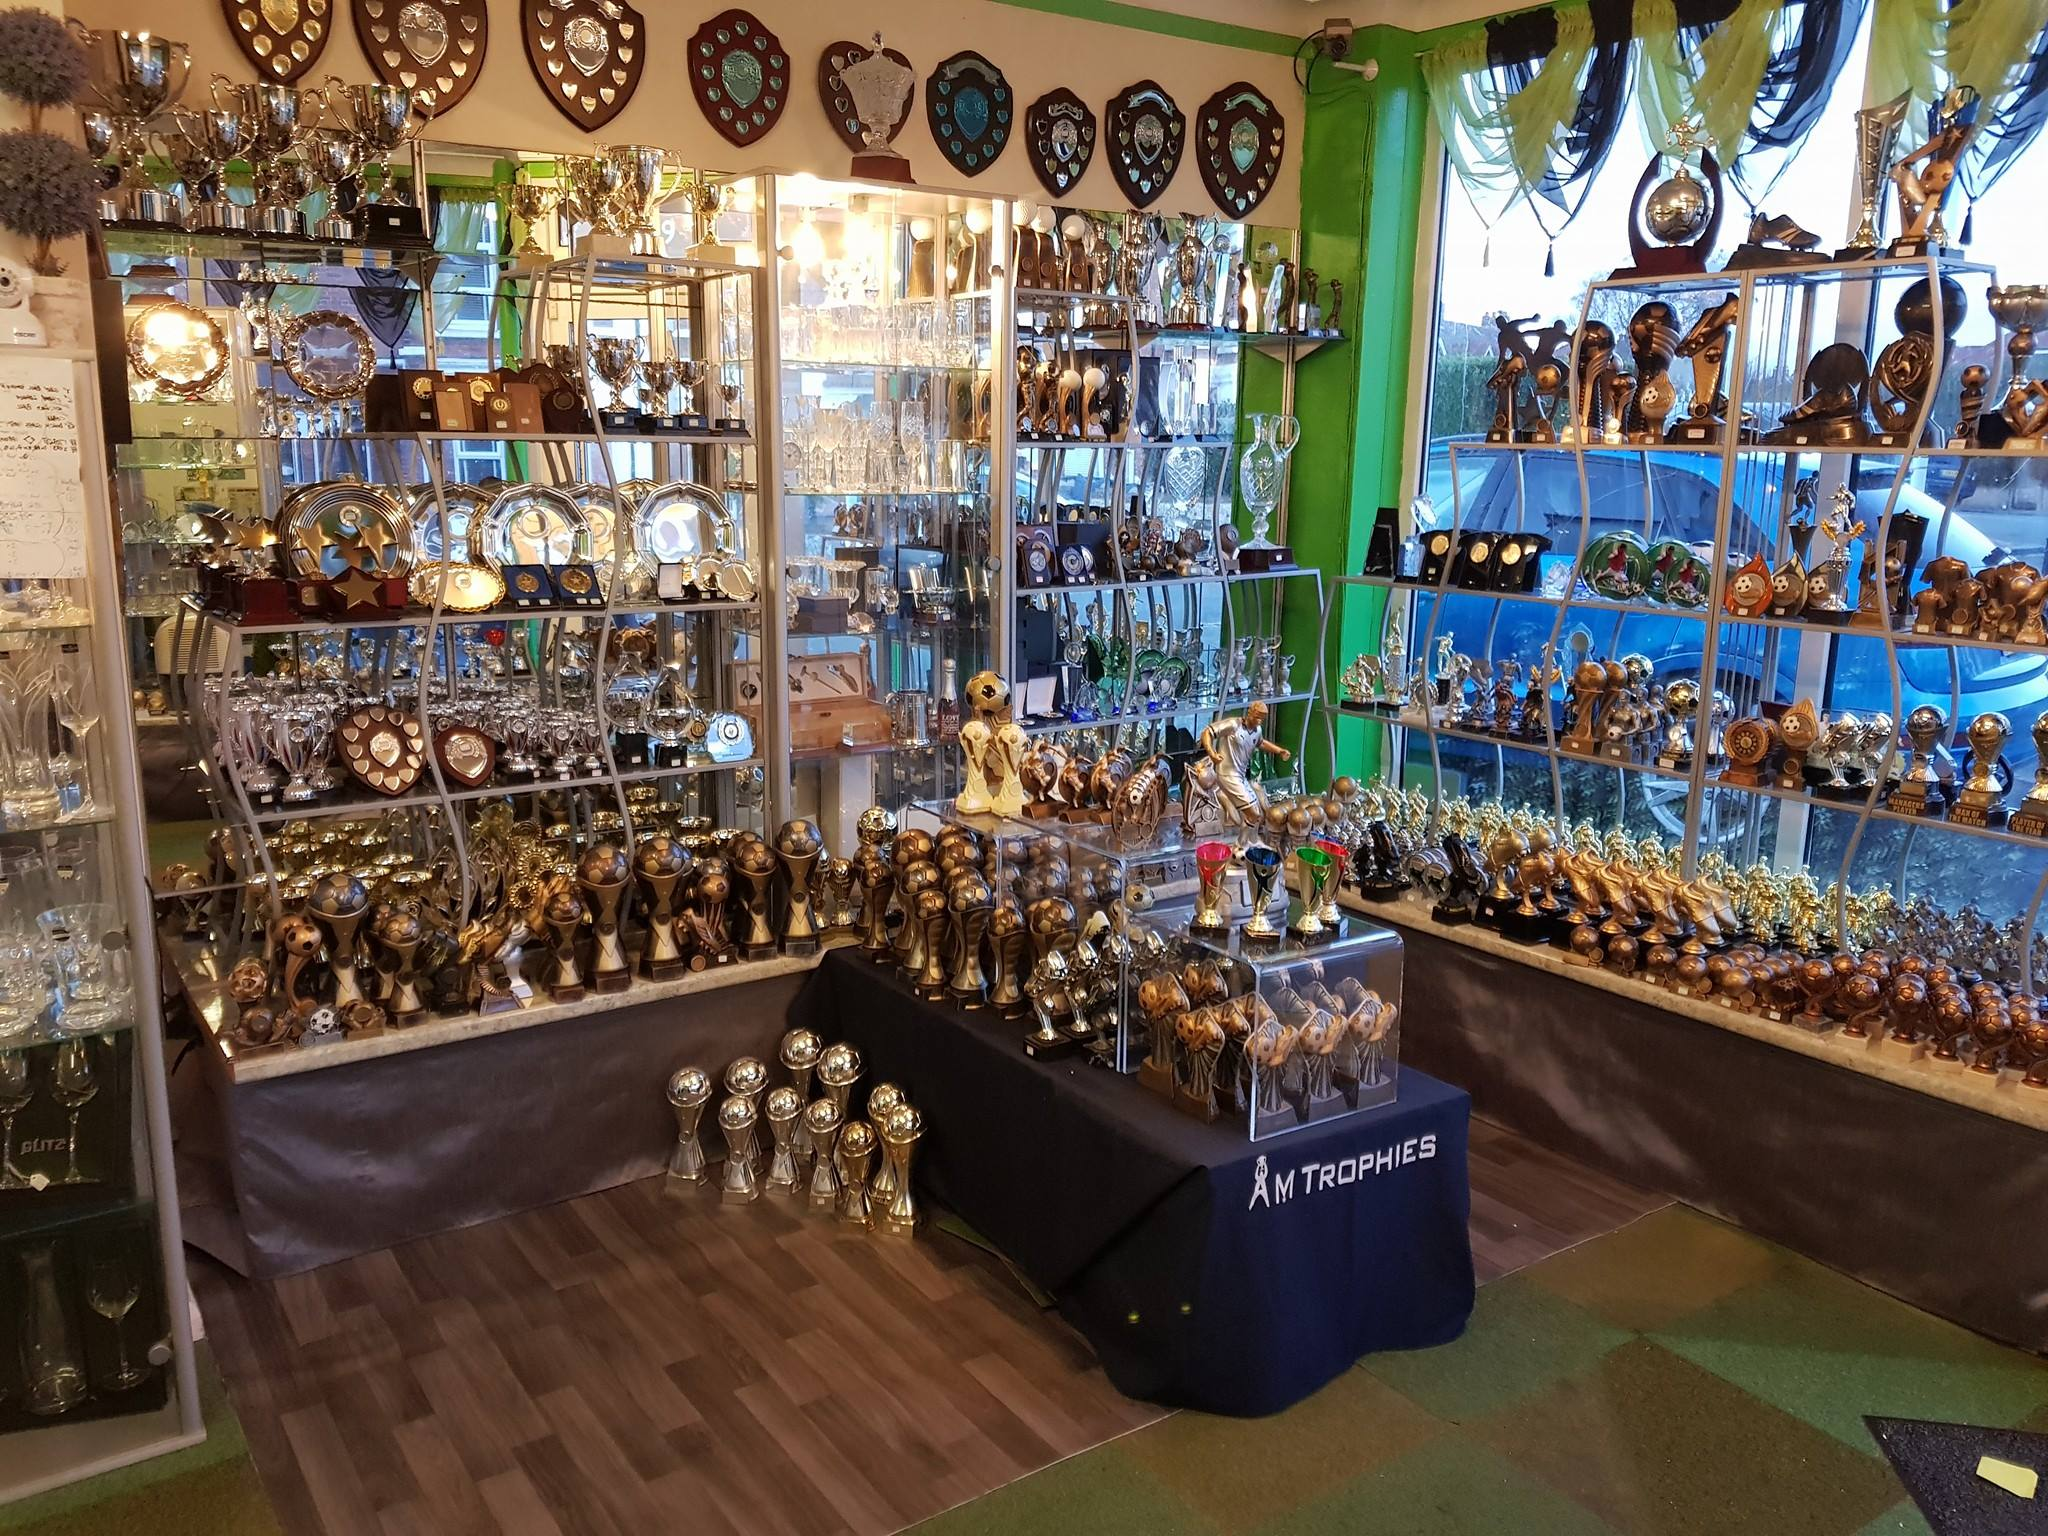 A M Trophies & Engraving: Trophies, Medals, Awards & Engraving